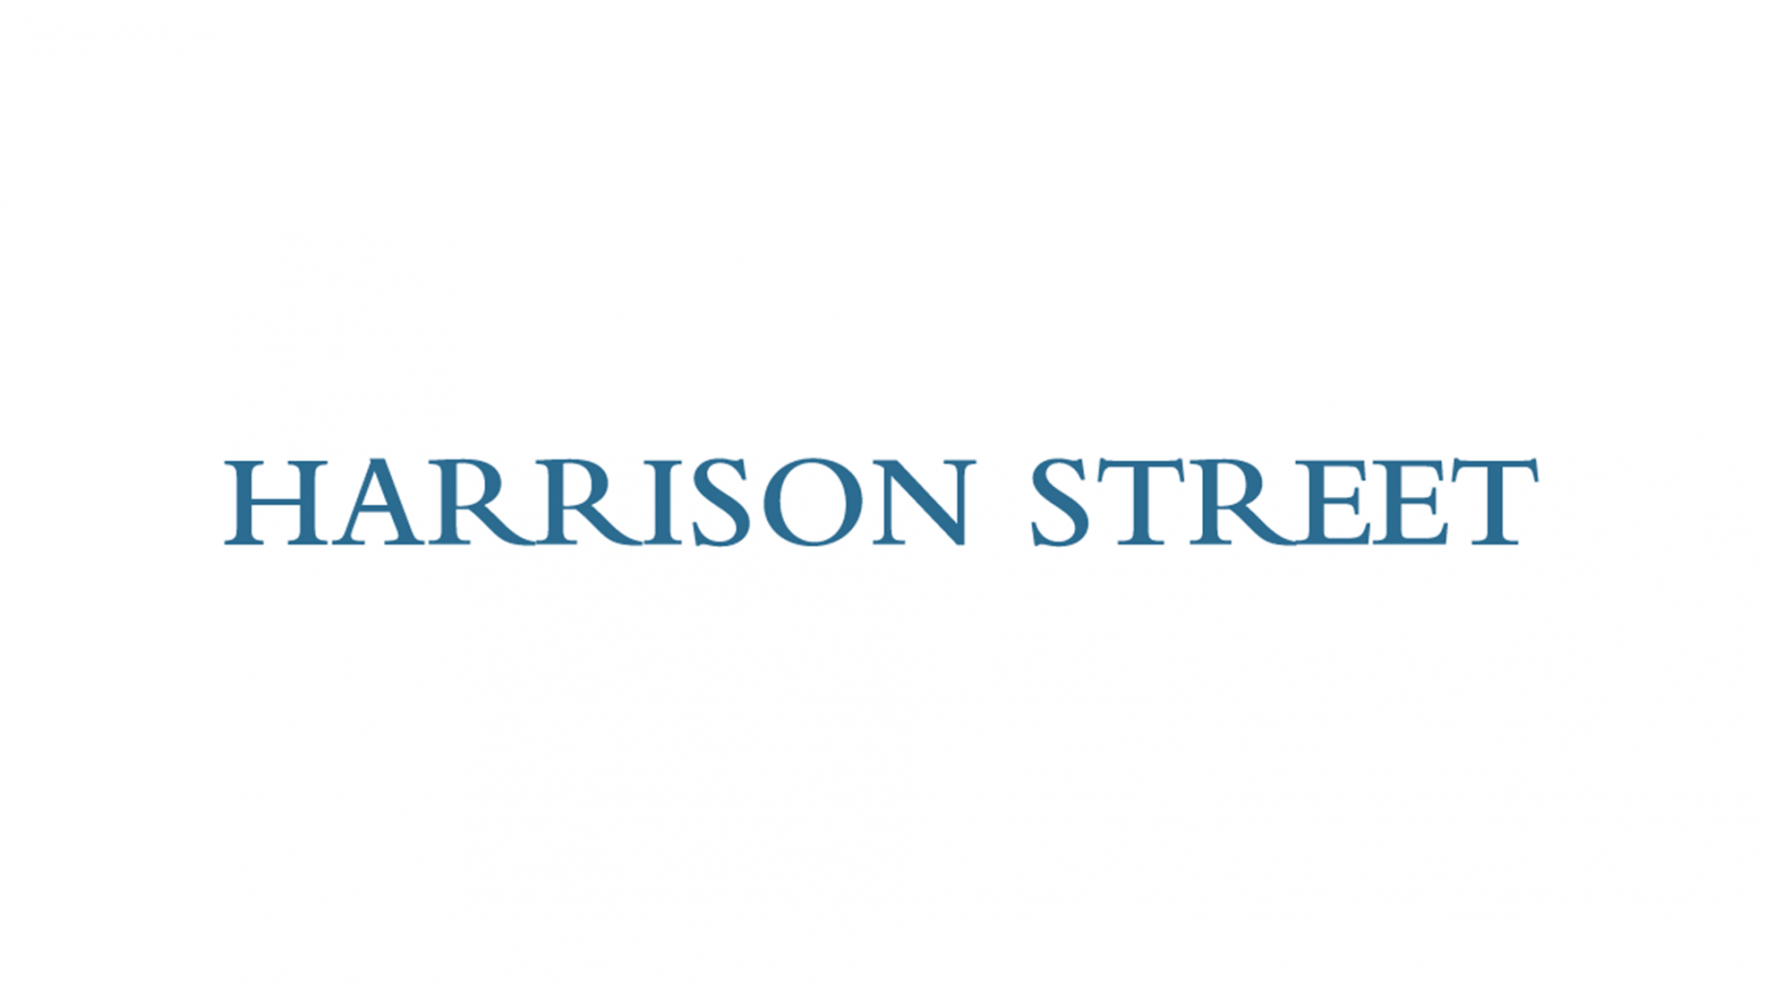 Harrison Street is a leading investment management firm exclusively focused on alternative real assets managing approximately $22.9 billion in assets under management.